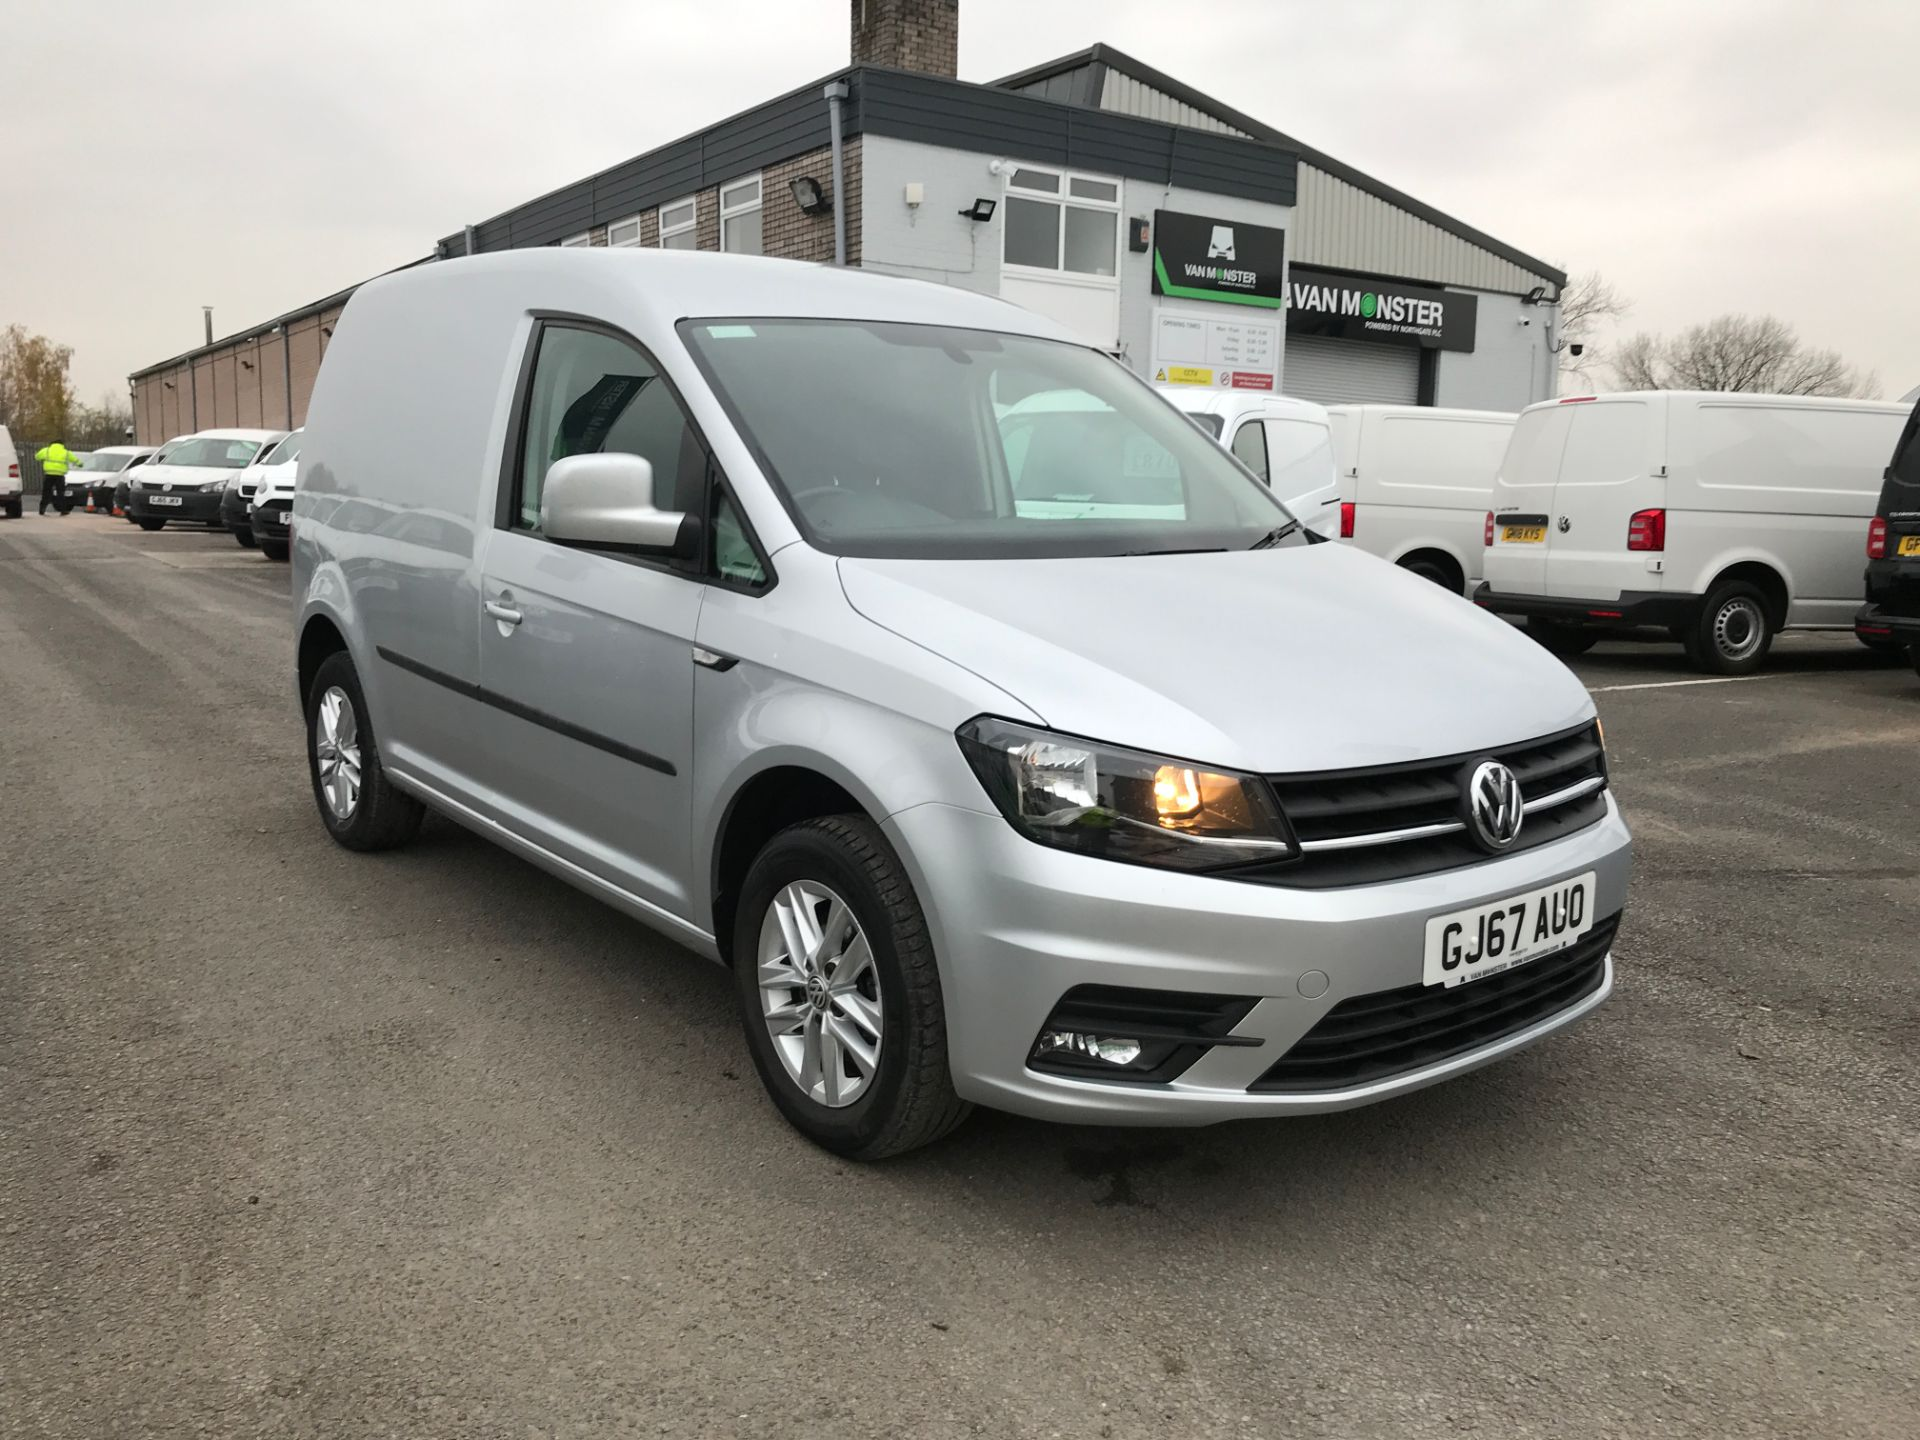 2017 Volkswagen Caddy 2.0TDI BLUEMOTION TECH 102PS HIGHLINE EURO 6 (GJ67AUO)